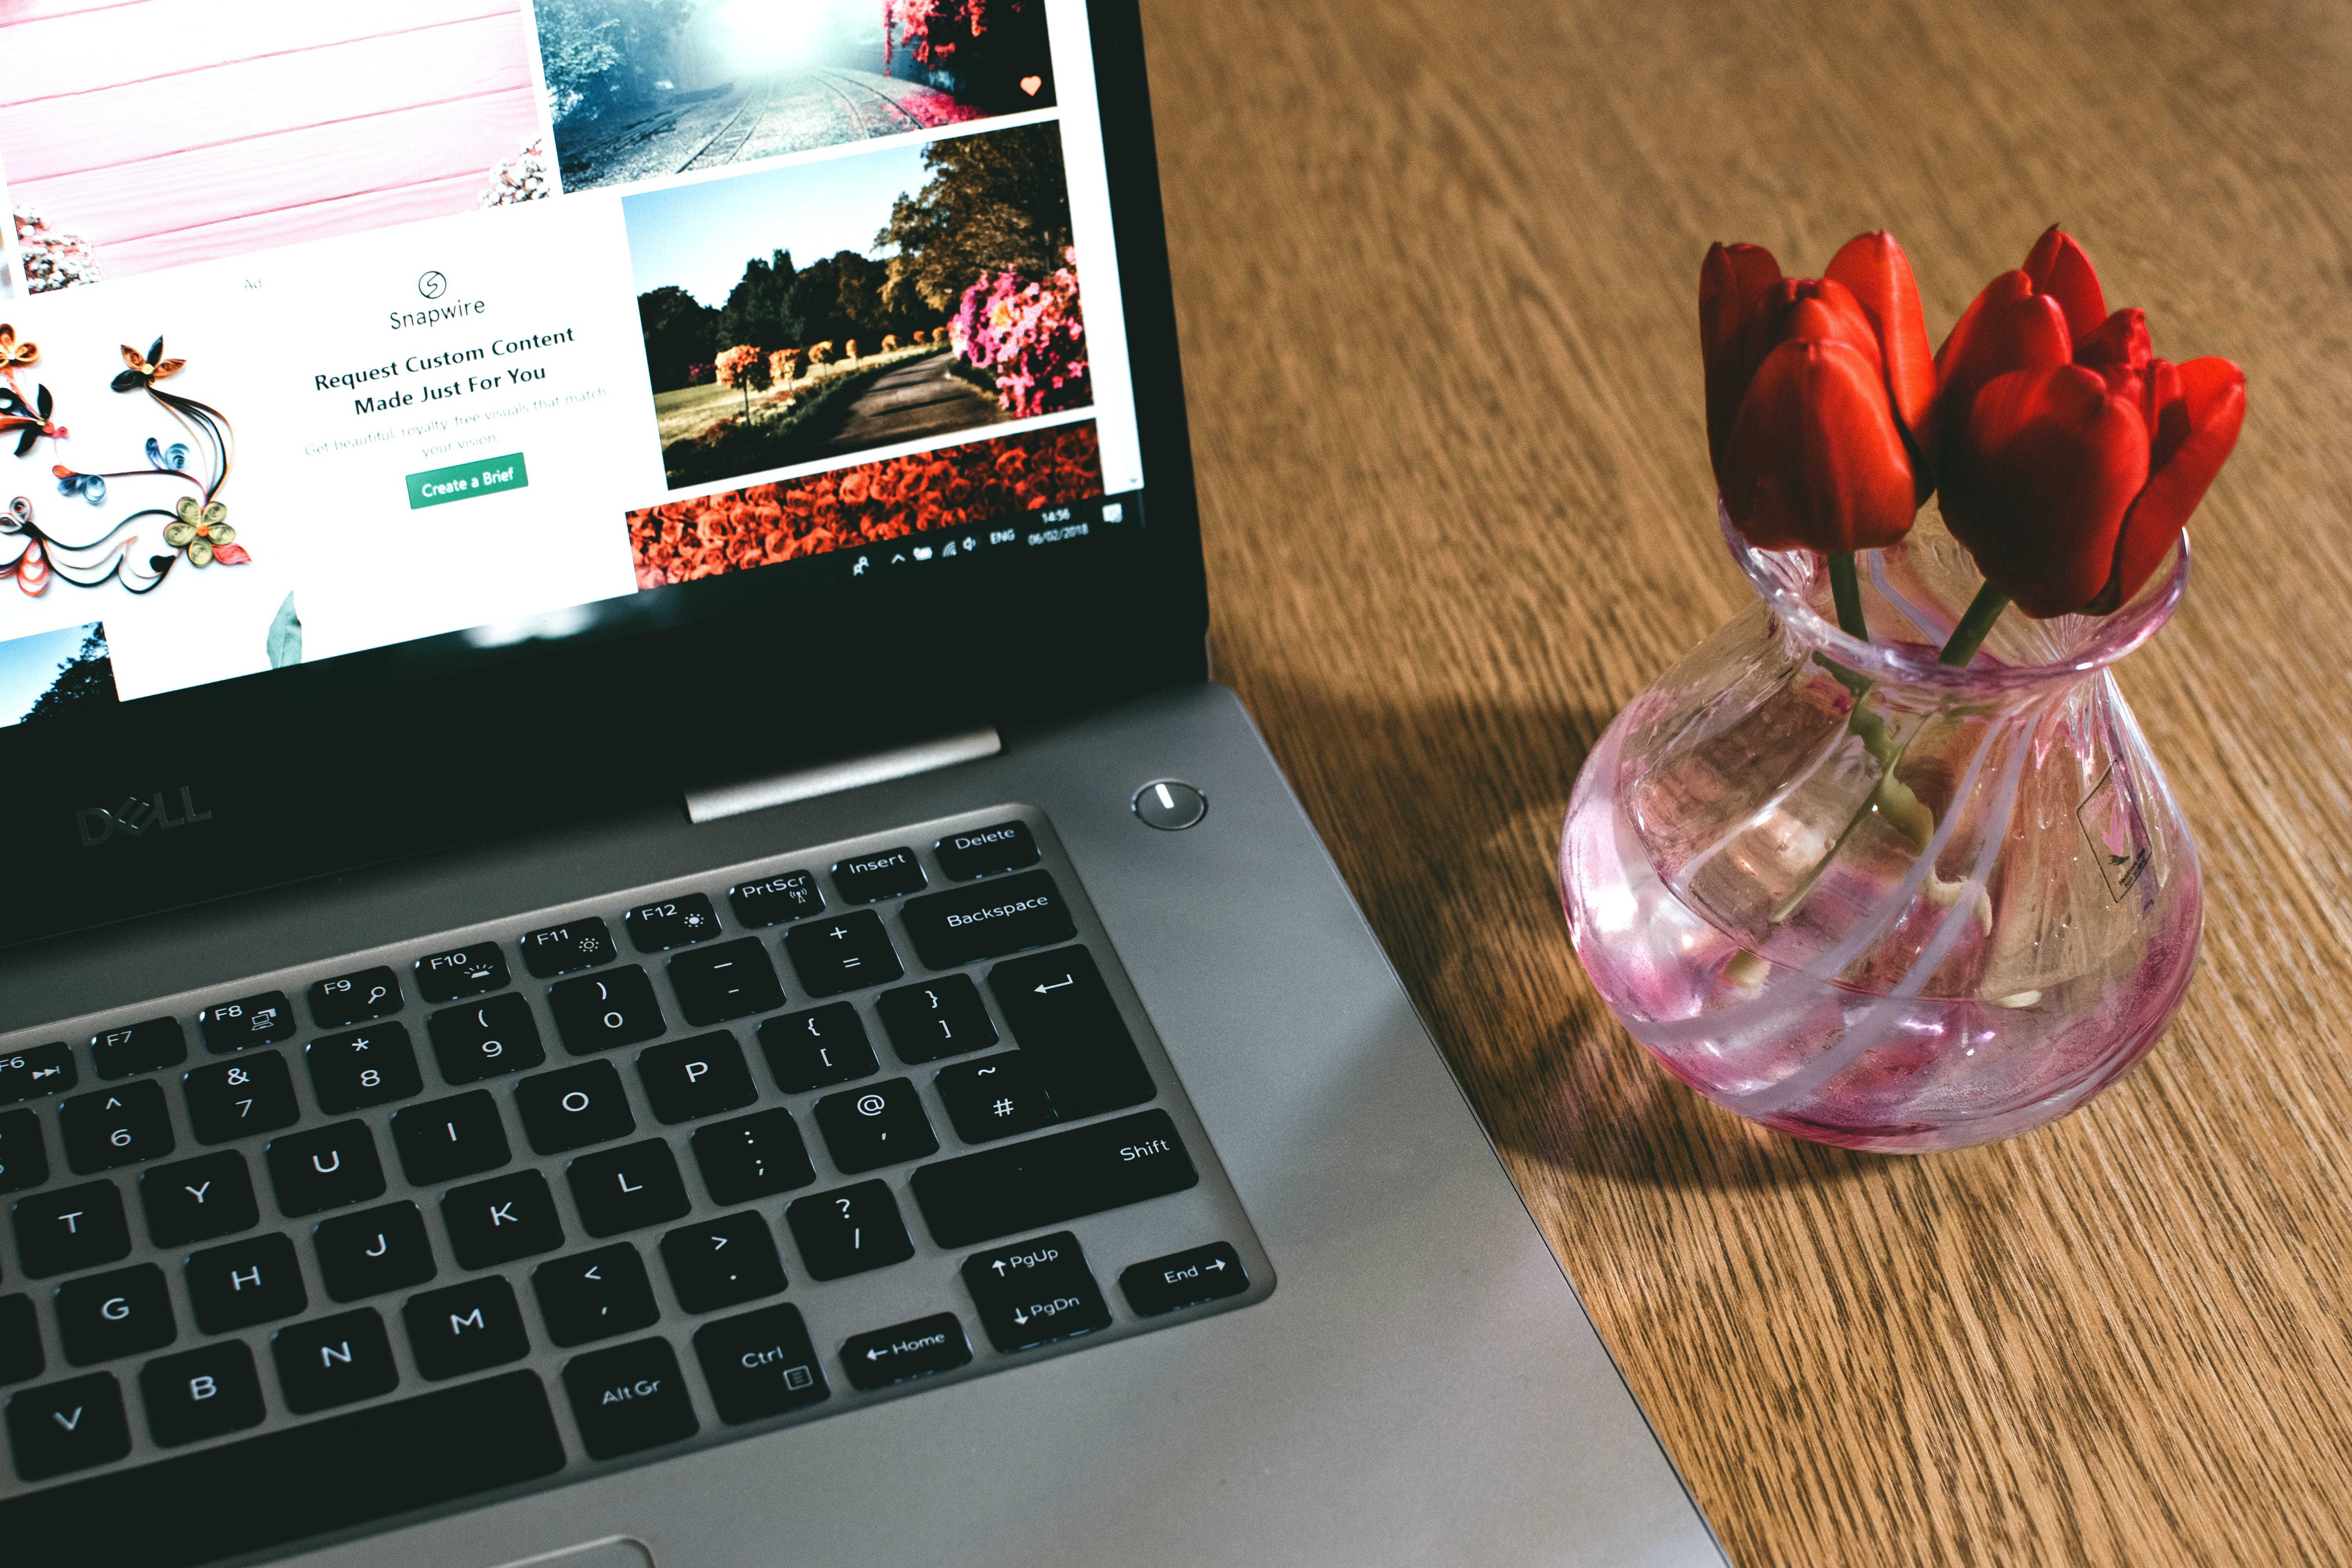 Black Dell Laptop Beside the Pink Glass Vase